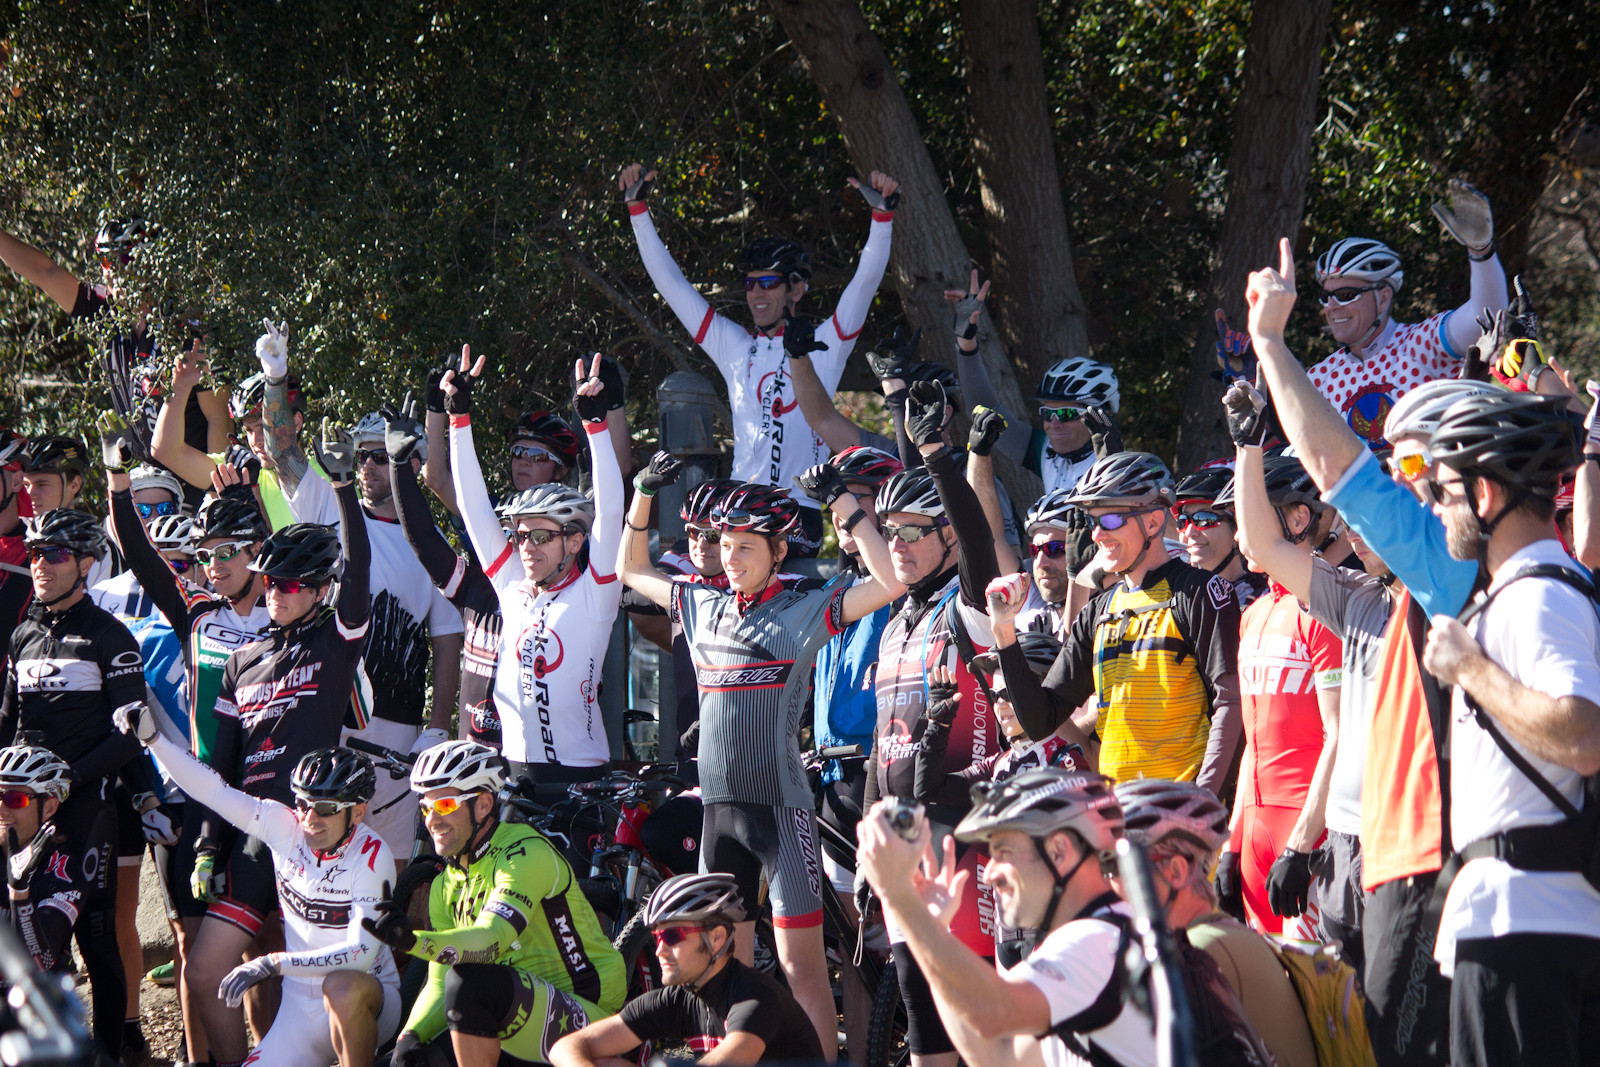 Mega Crew! - Specialized A1 Ride Daze - In Memory of Burry Stander - Mountain Biking Pictures - Vital MTB